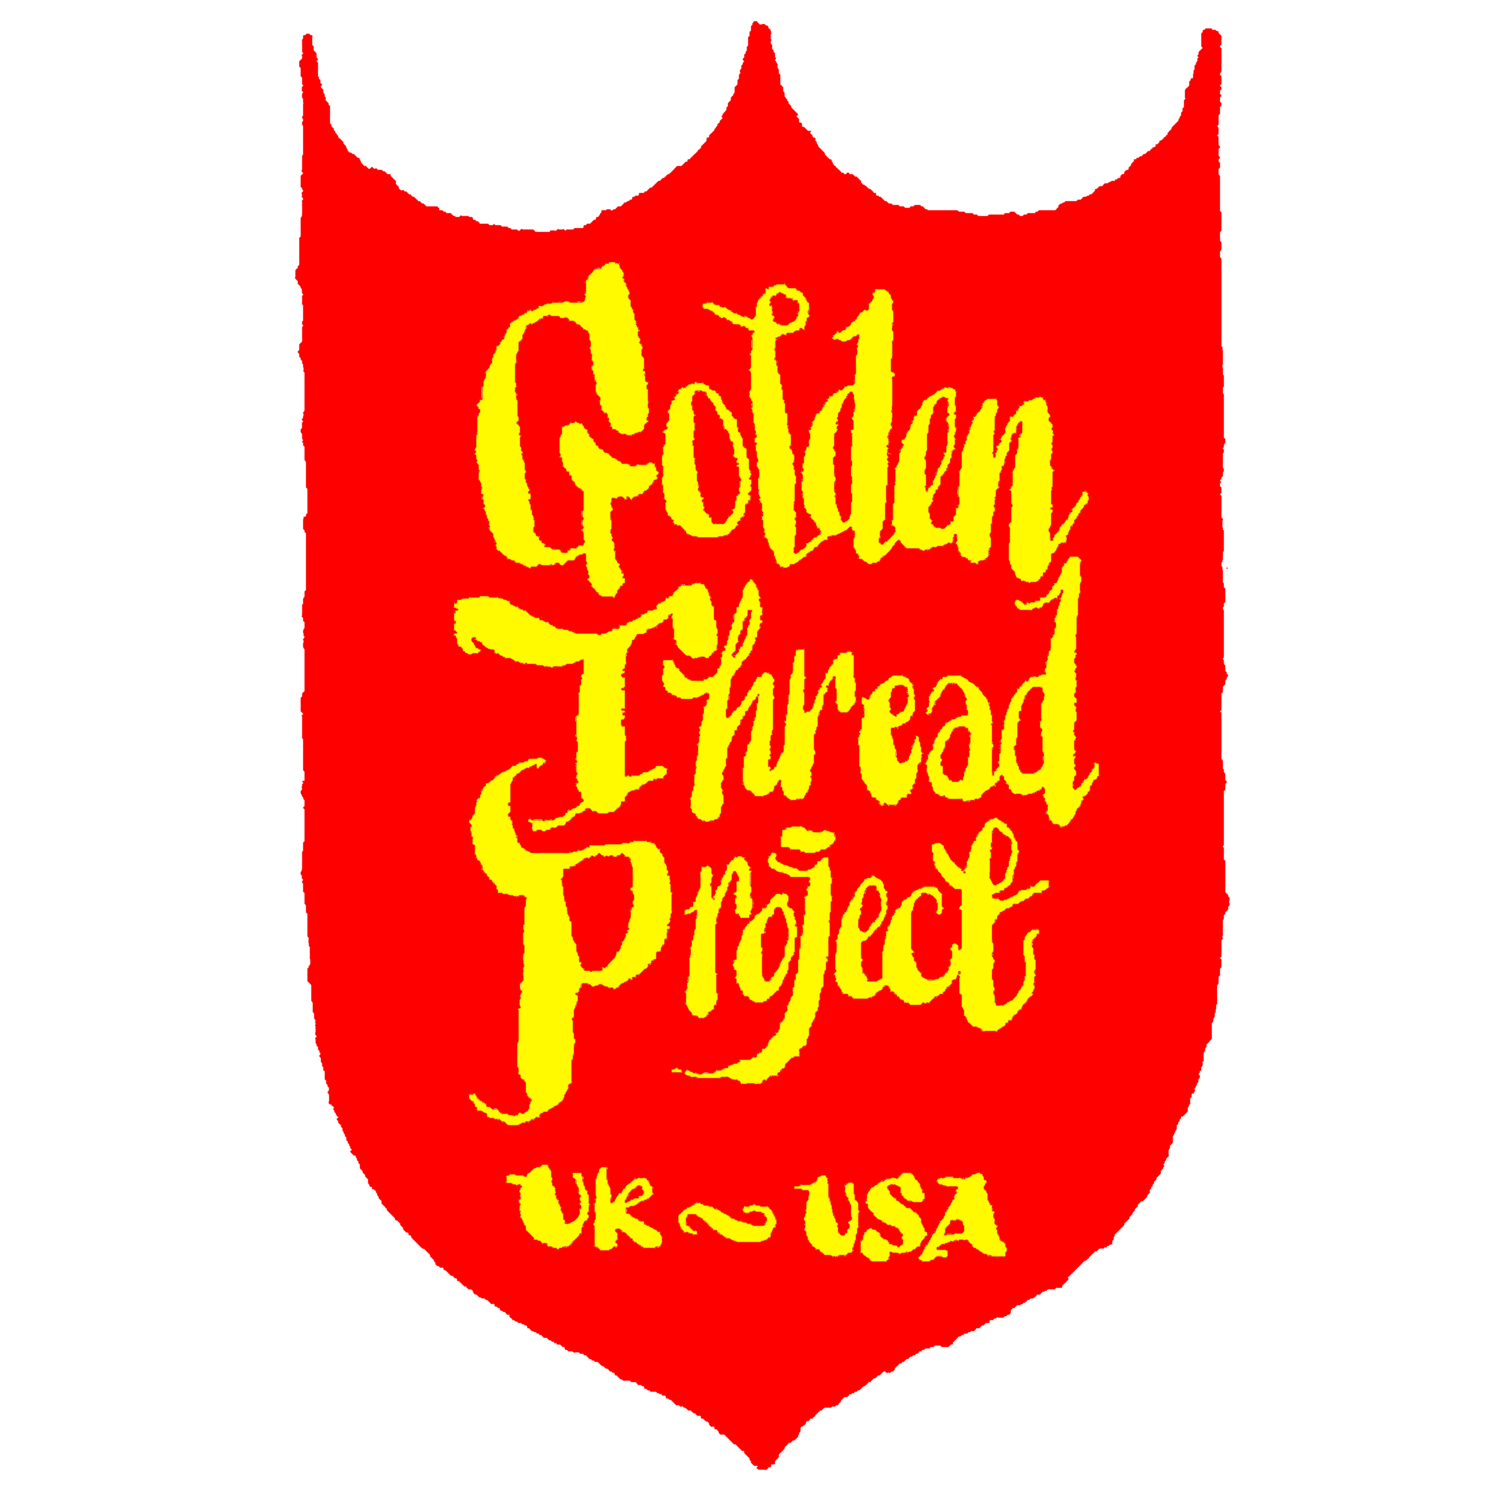 The Golden Thread Project